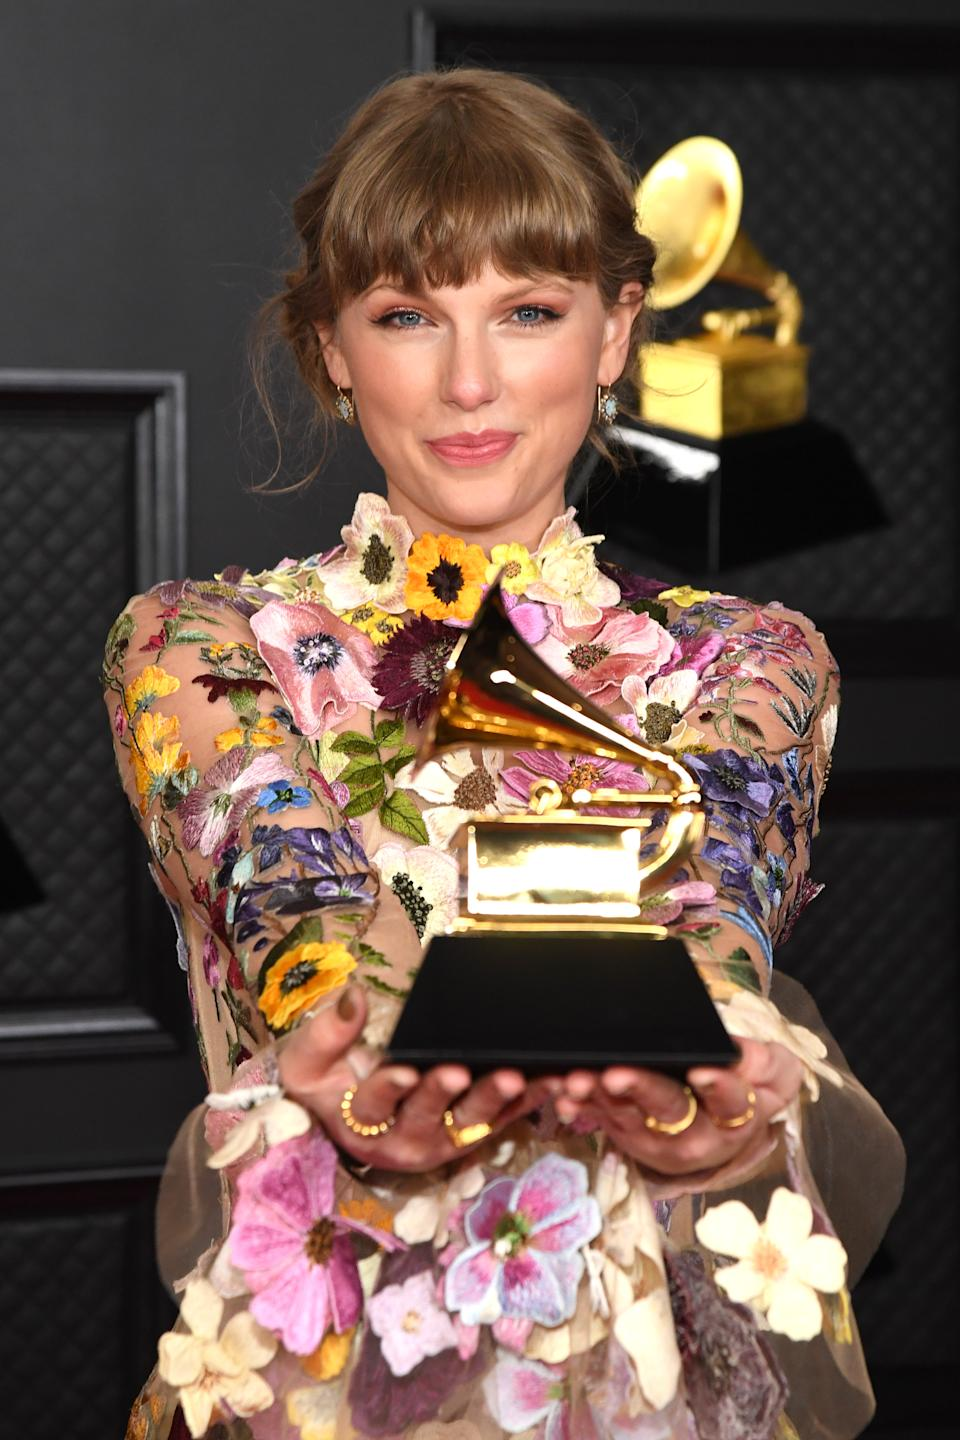 The Recording Academy said the change would place results 'back in the hands of the entire voting membership body'. (Photo by Kevin Mazur/Getty Images for The Recording Academy)